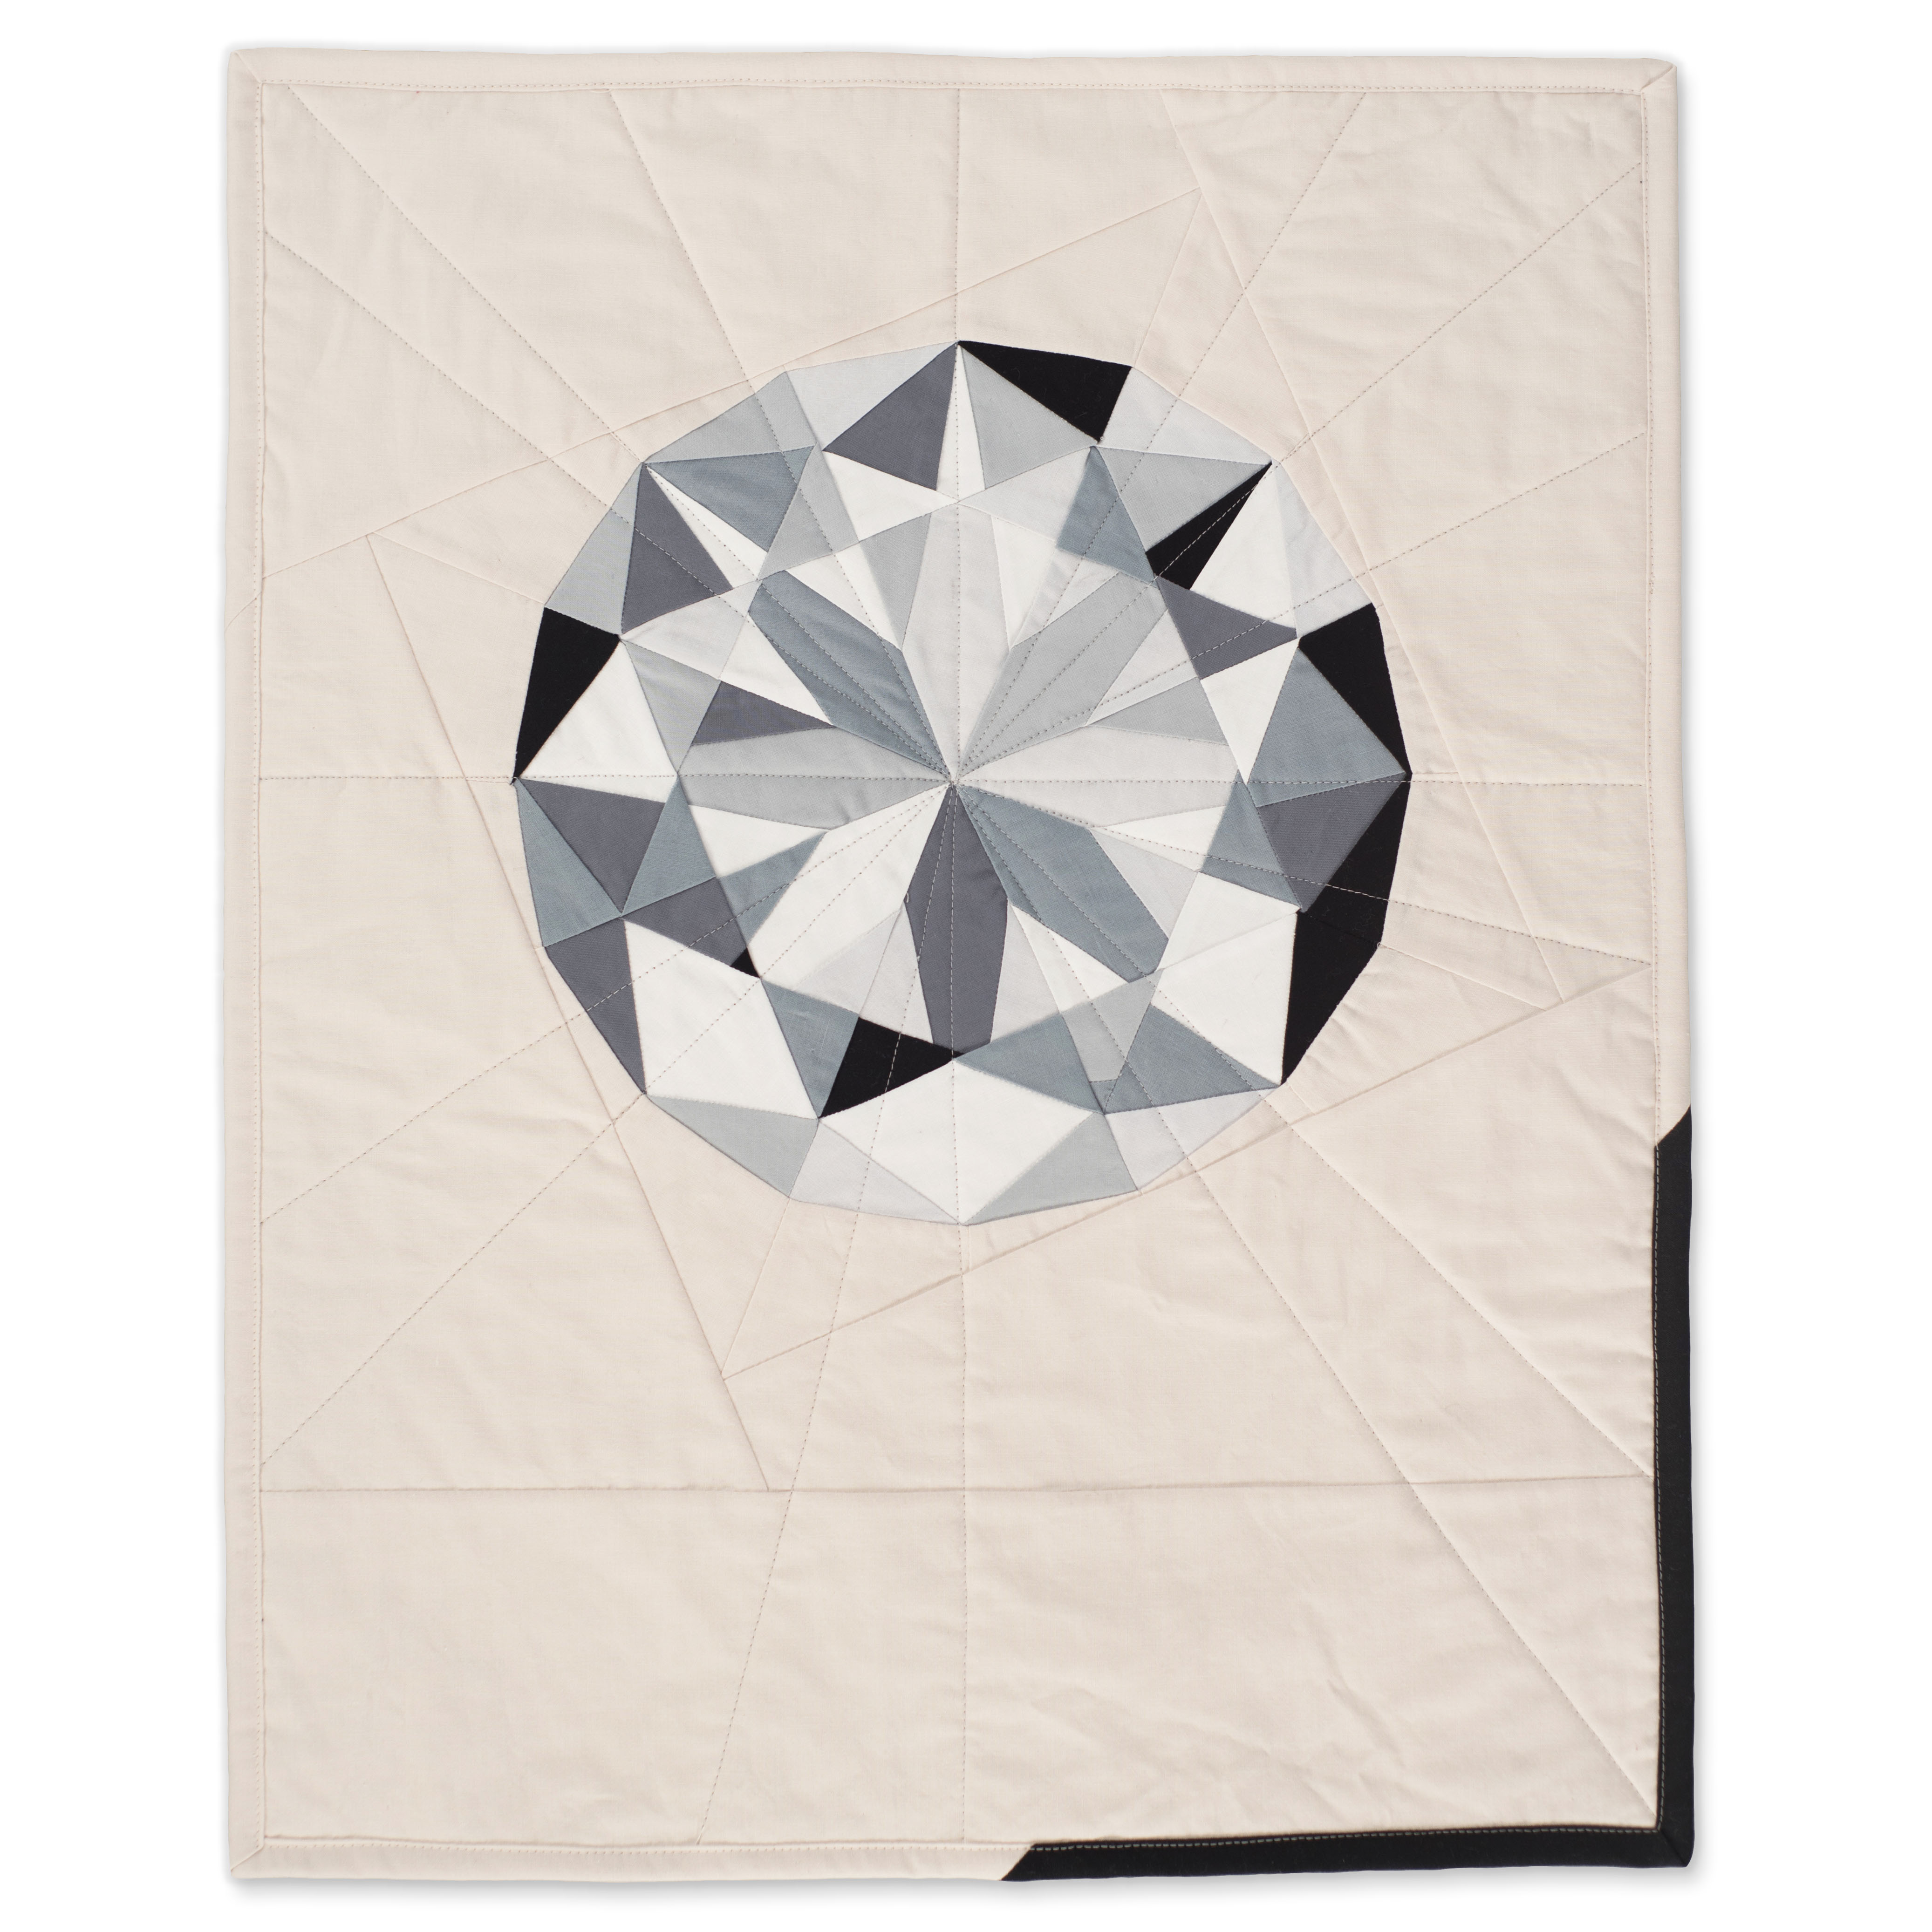 "<b>Diamond</b><br>20"" x 25""<br>Cotton, cotton batting<br>SOLD"